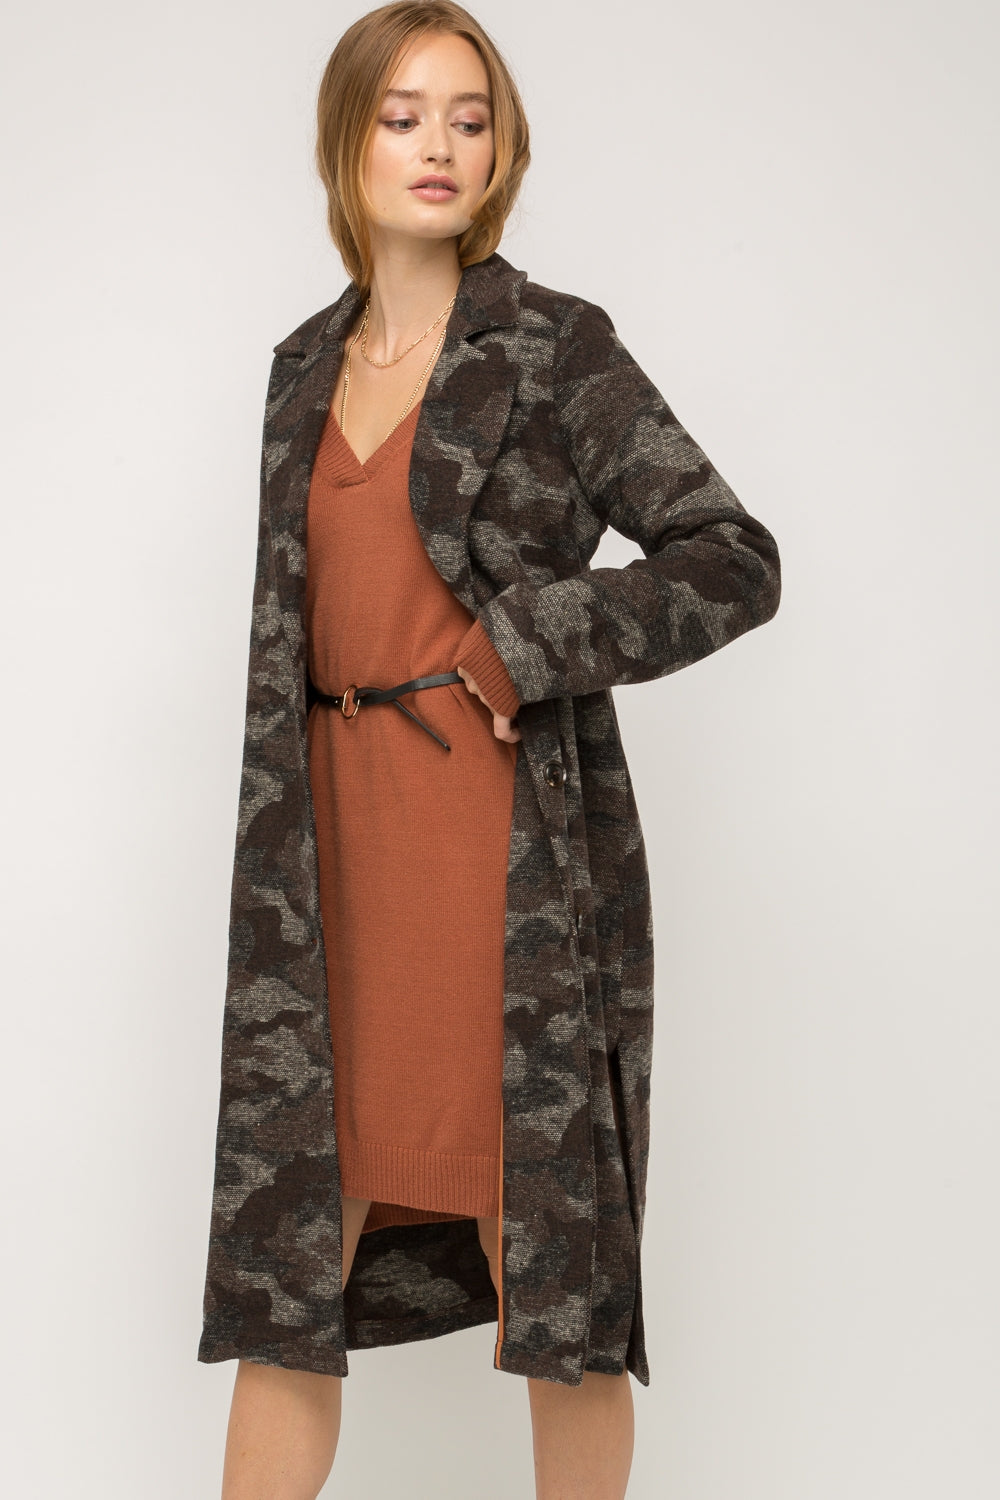 Mystree Camo Long Coat. Camo long coat  Button-front closure Side pockets Side slits detail Fully lined -100% Polyester  -Contrast: 100% Polyester  -Lining: 100% Rayon